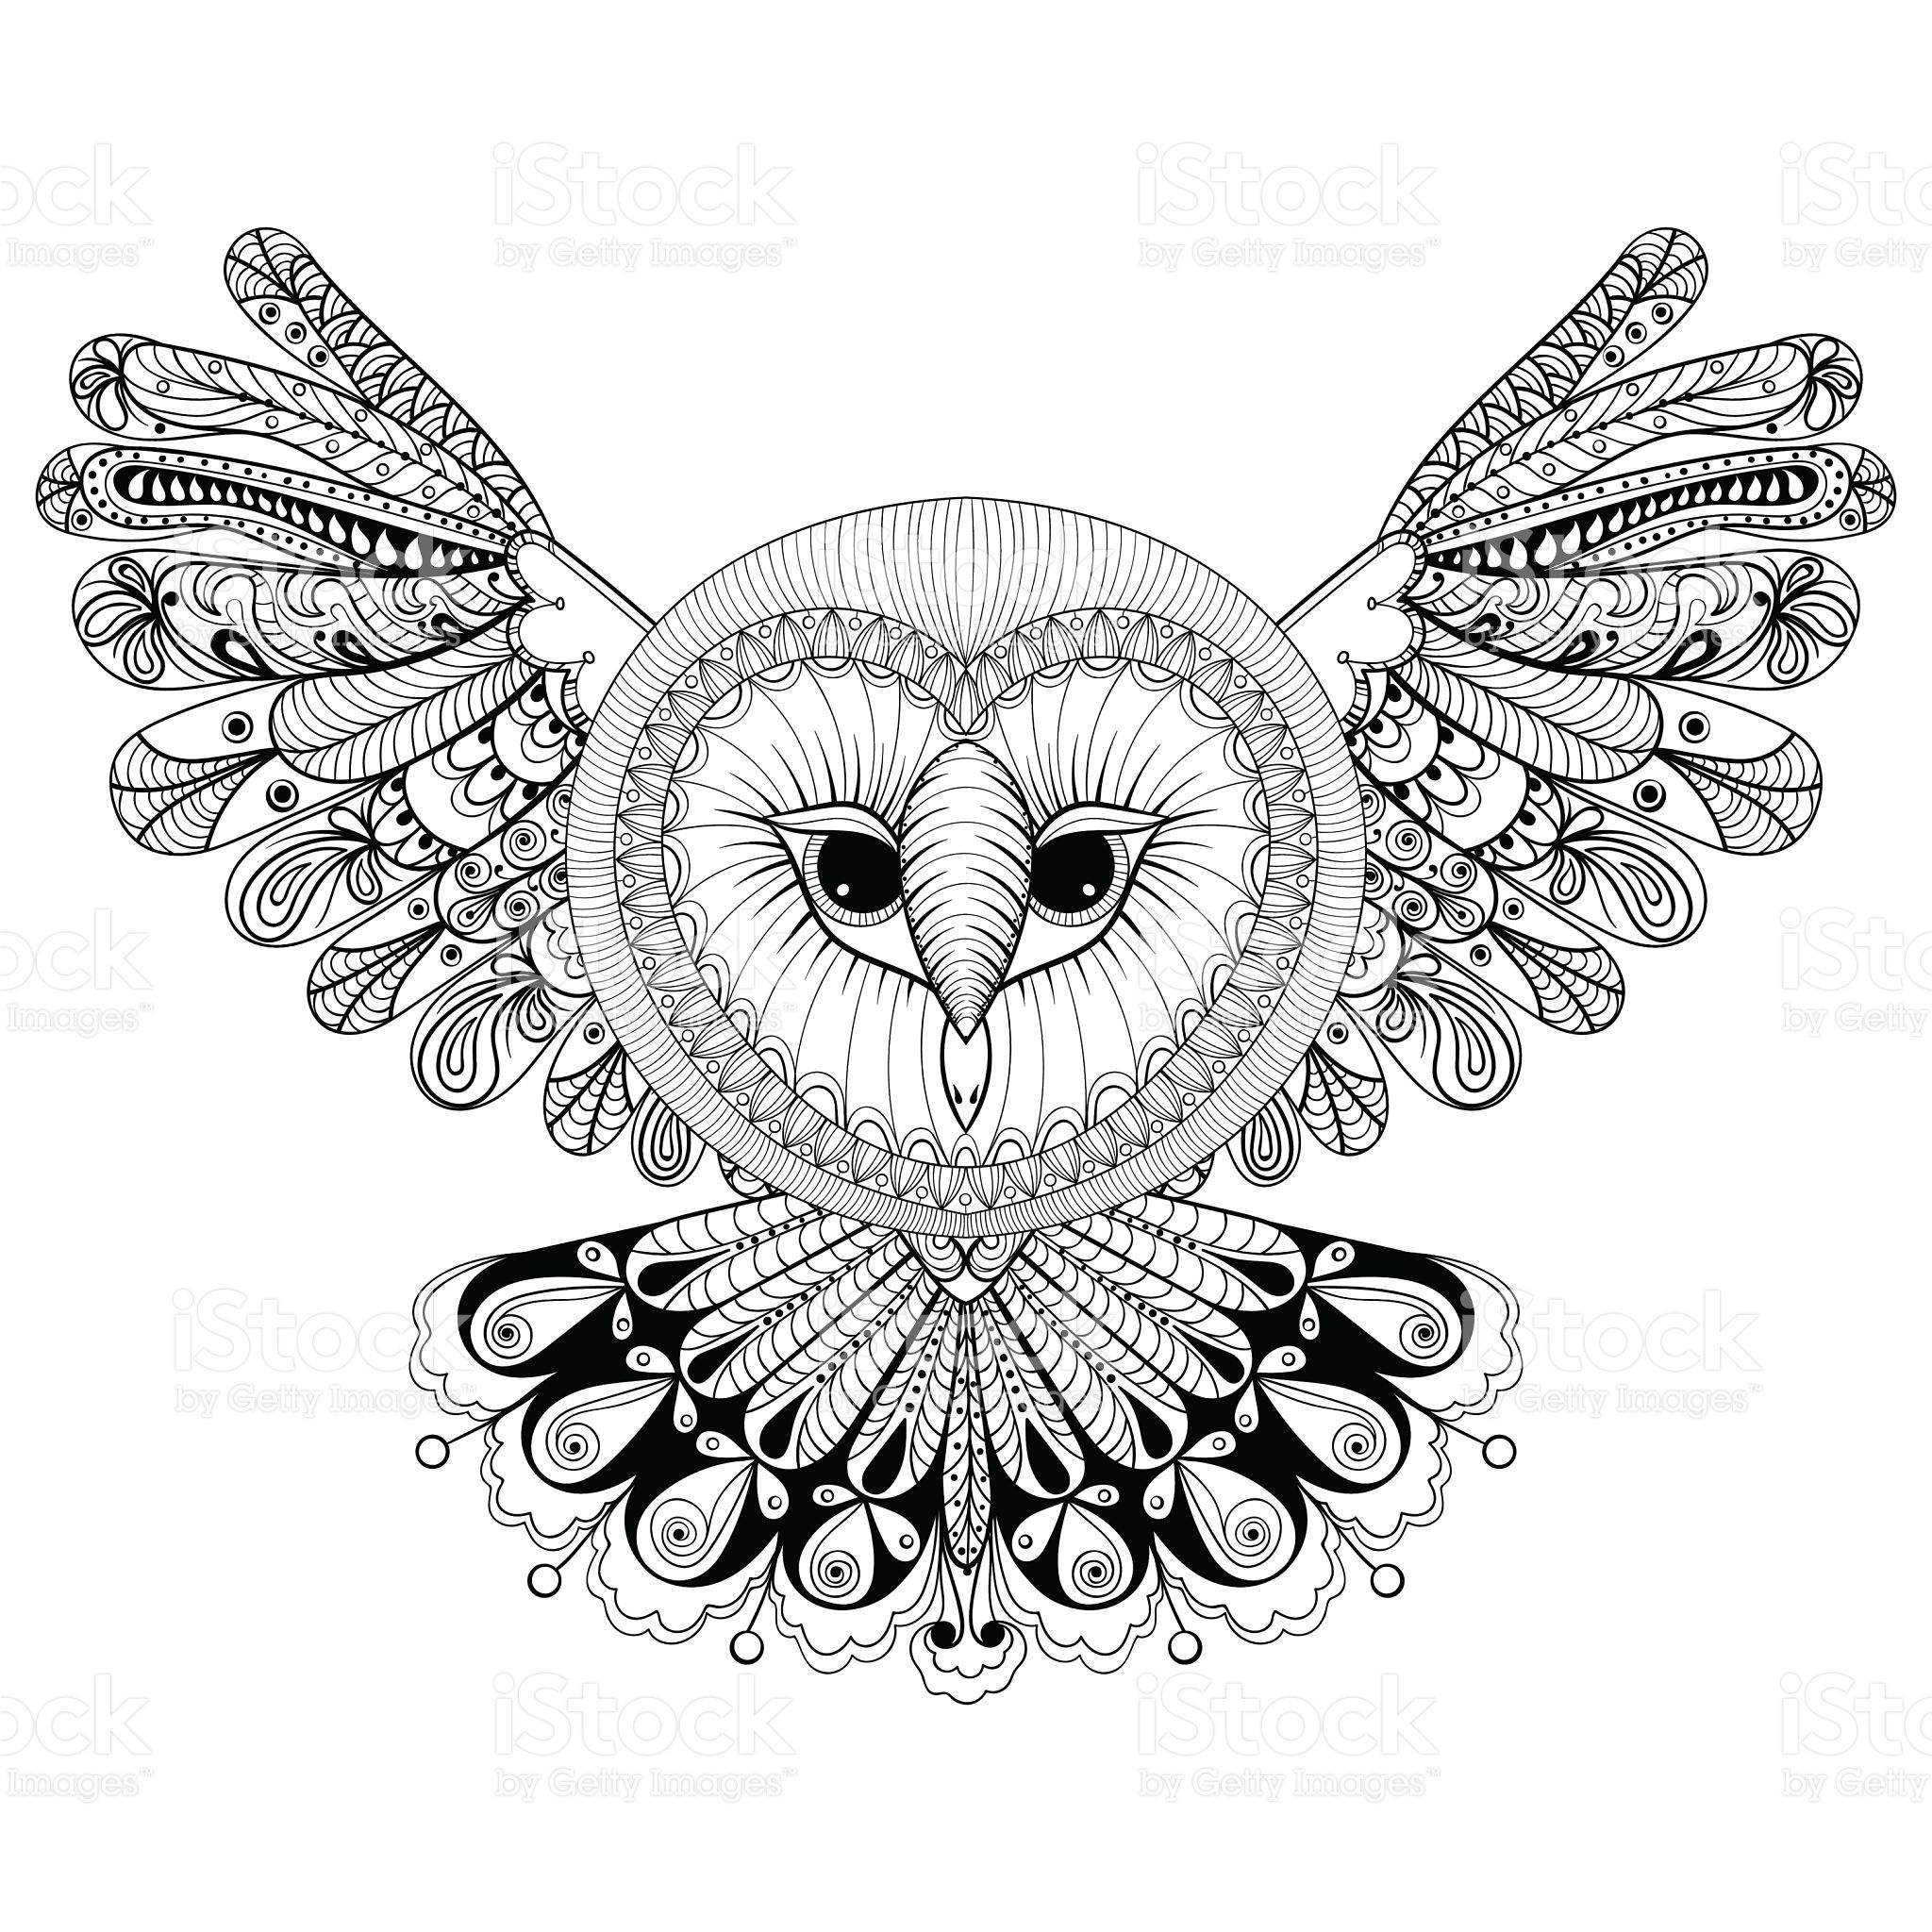 Coloring Page With Owl Hand Drawing Illustration Tri Royalty Free Stock Vector Art